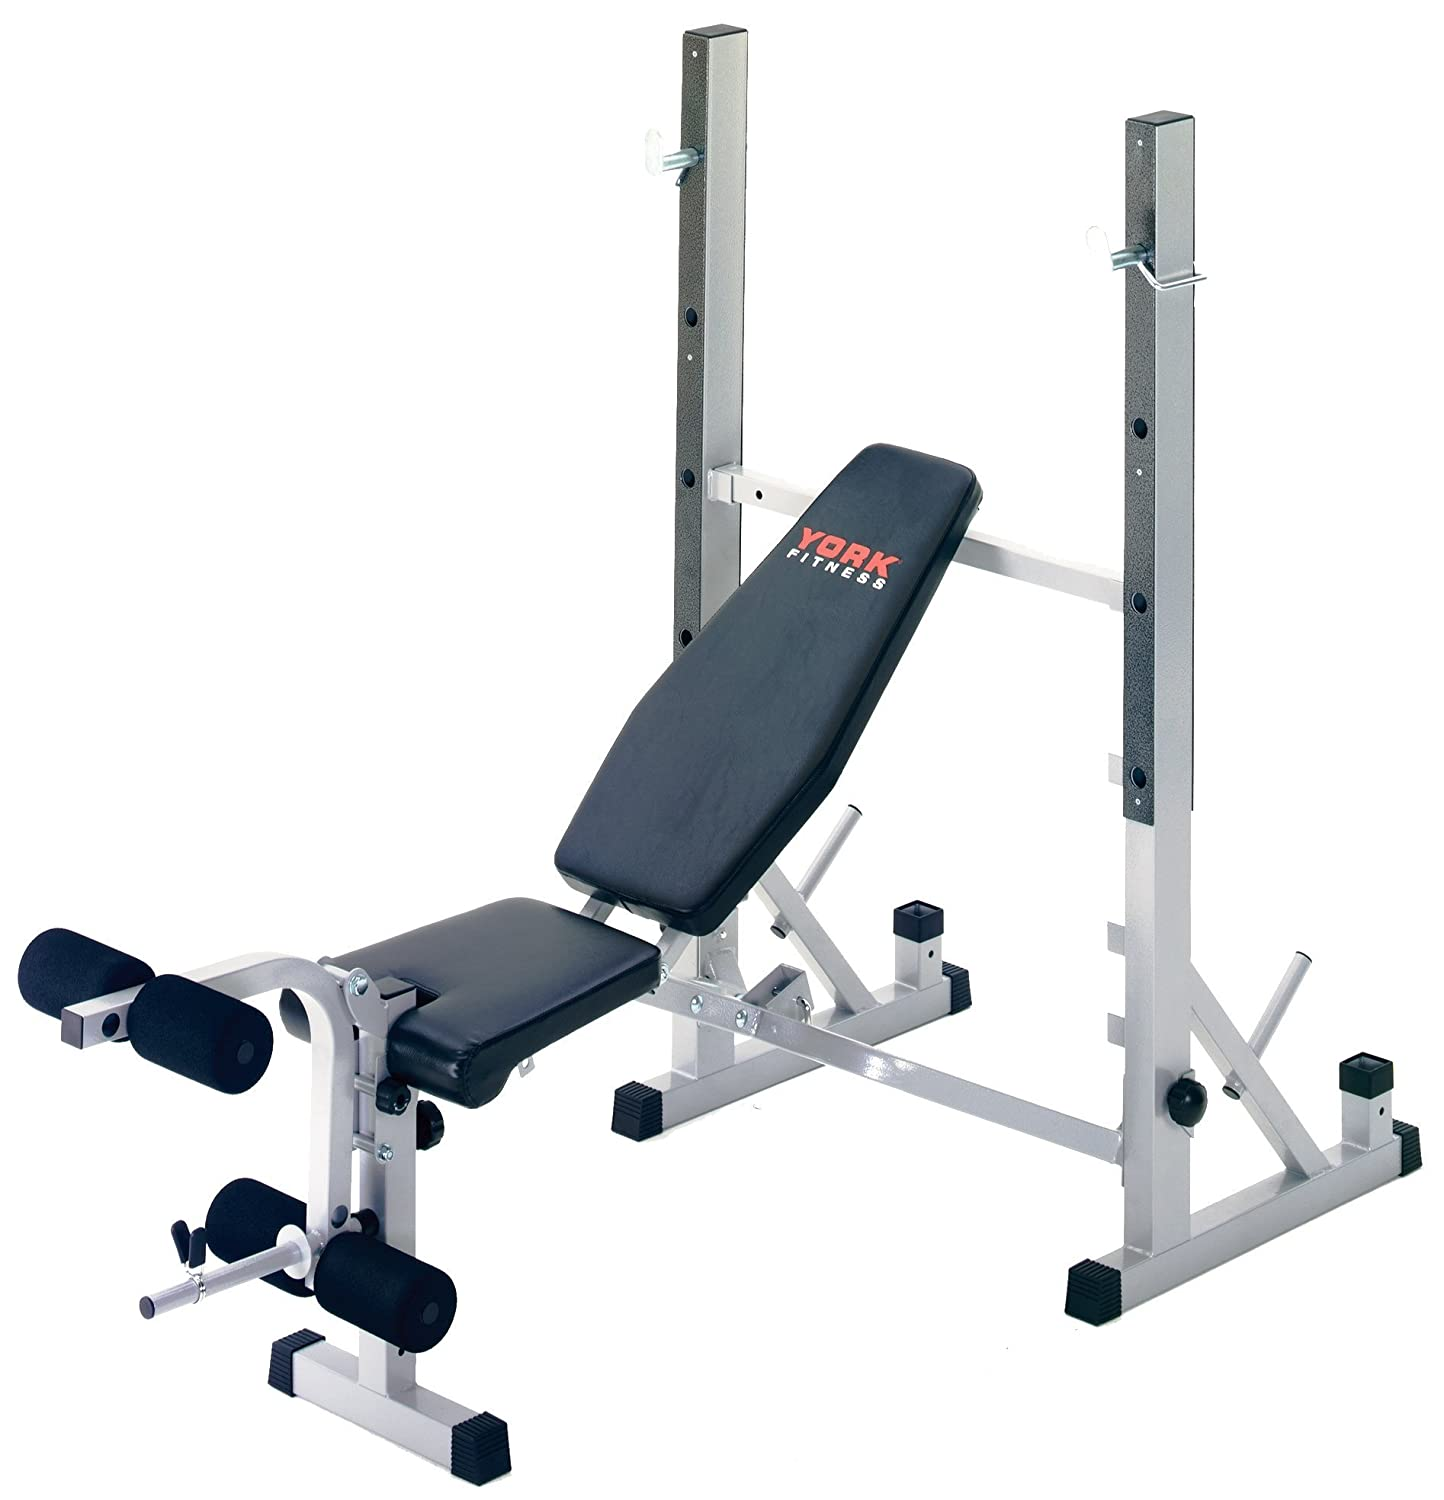 sale lifting garage bench set sports weight in hodoval weights s america total and itemsdetail